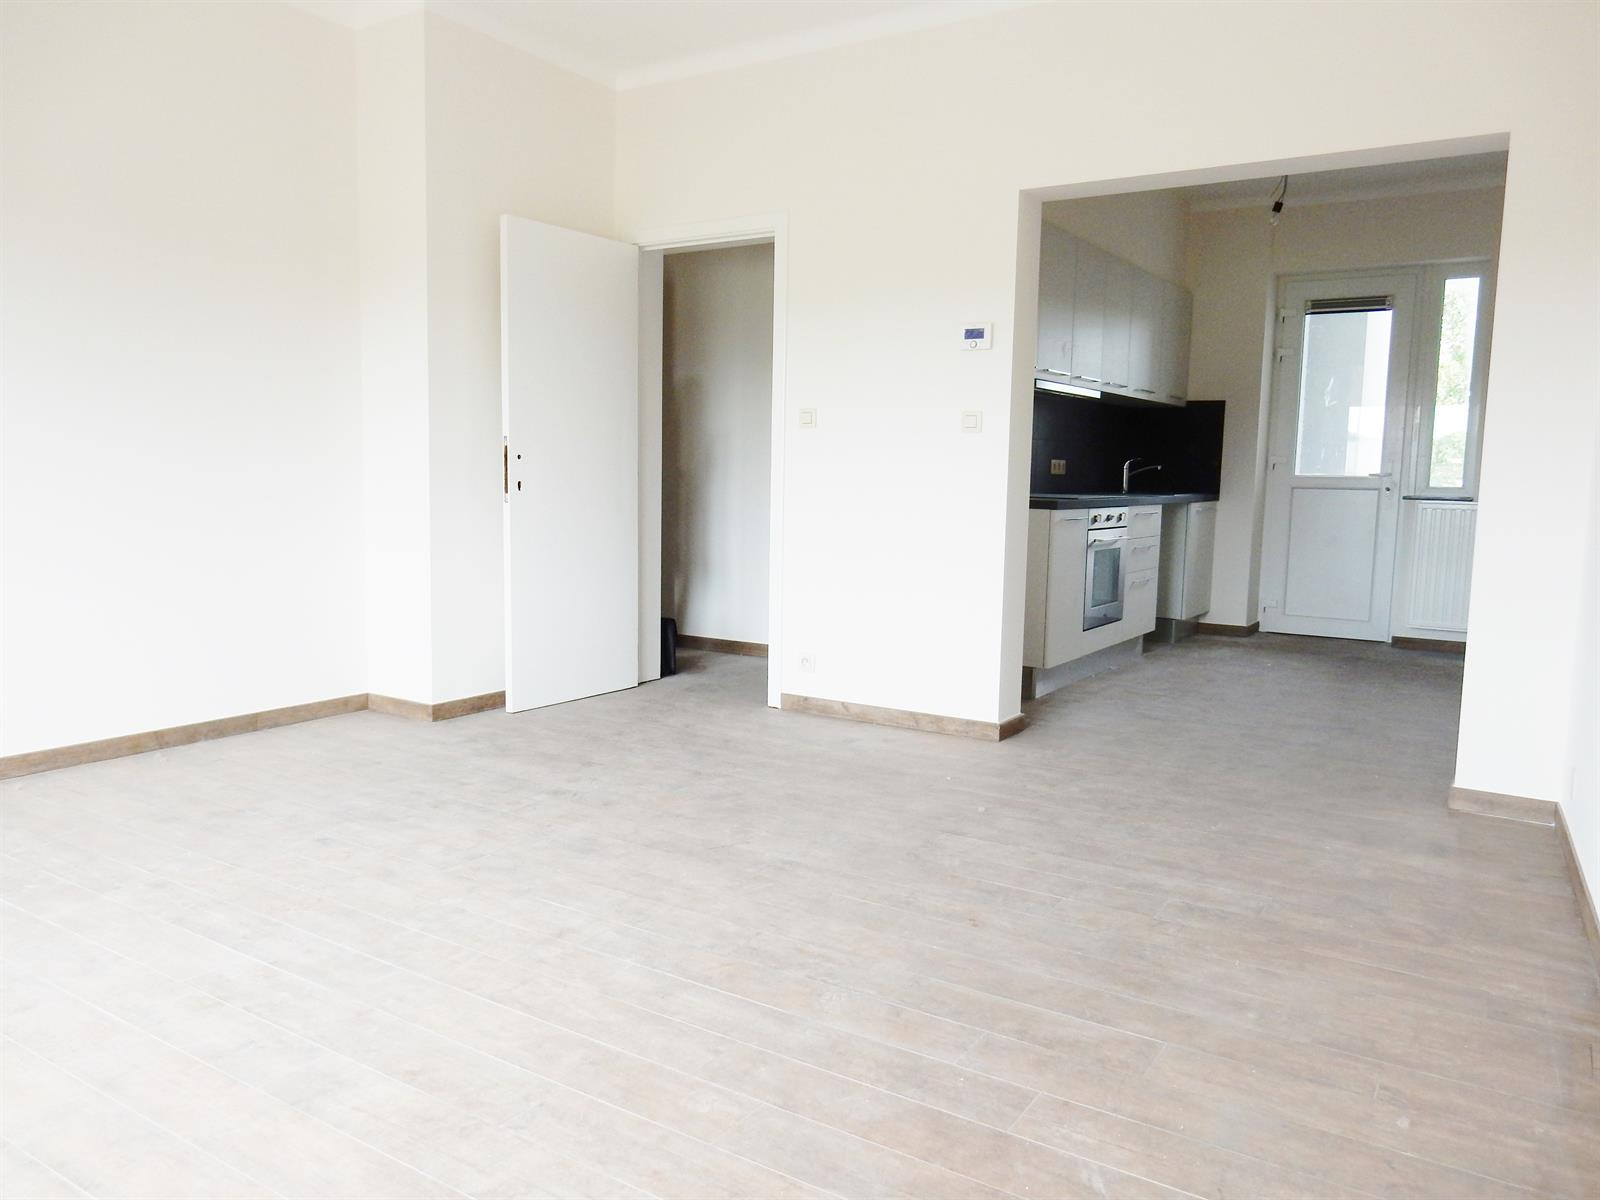 Appartement - Forest - #3956499-1